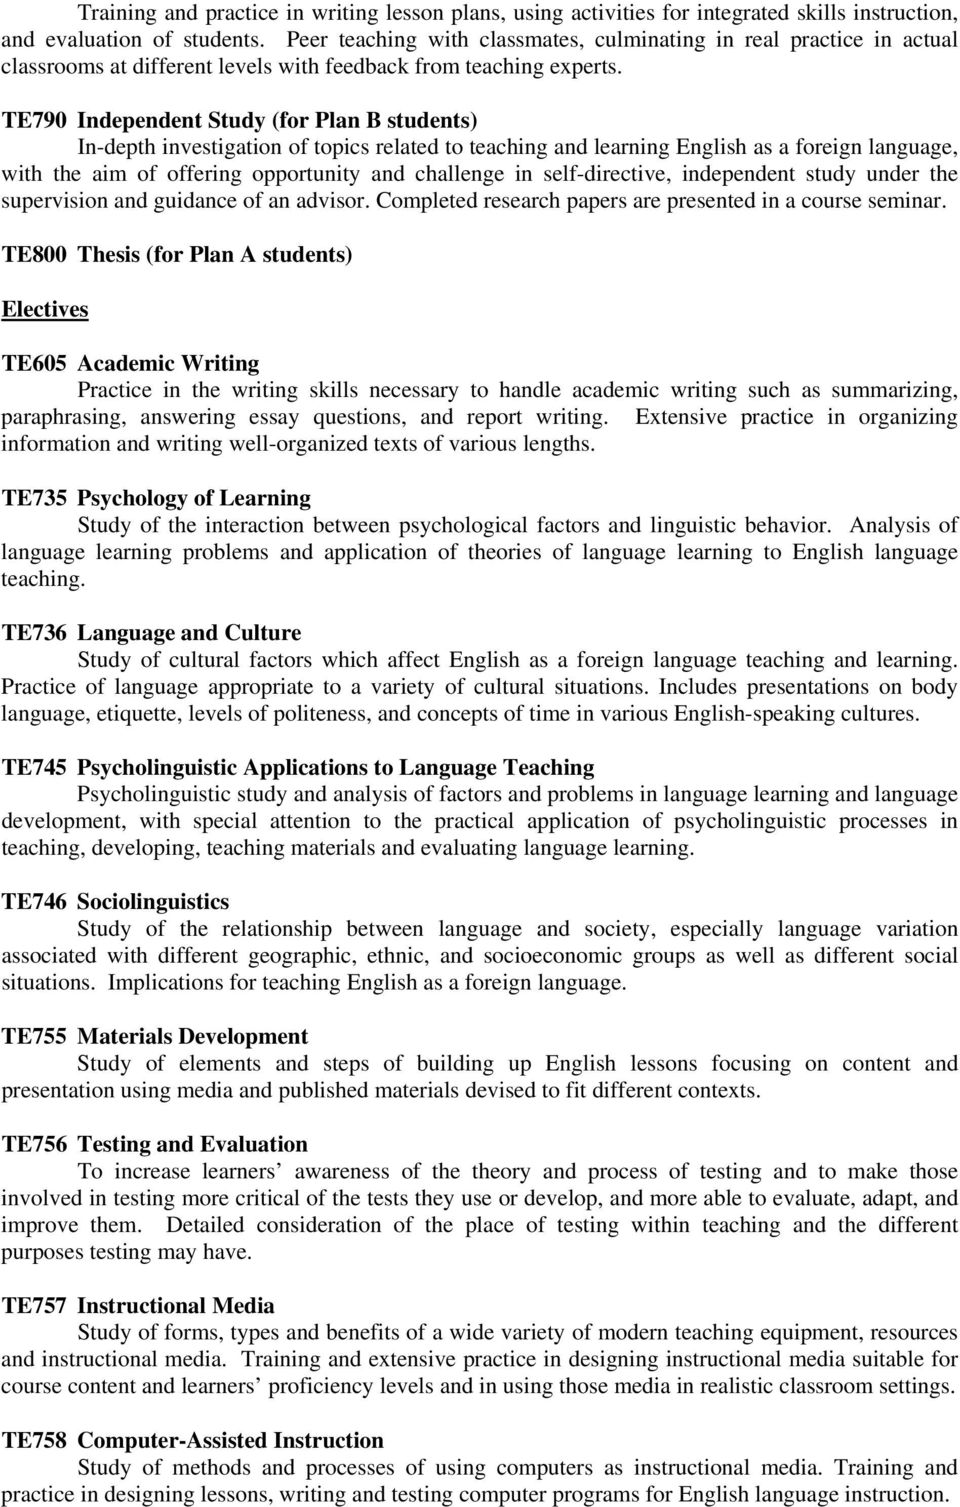 TE790 Independent Study (for Plan B students) In-depth investigation of topics related to teaching and learning English as a foreign language, with the aim of offering opportunity and challenge in